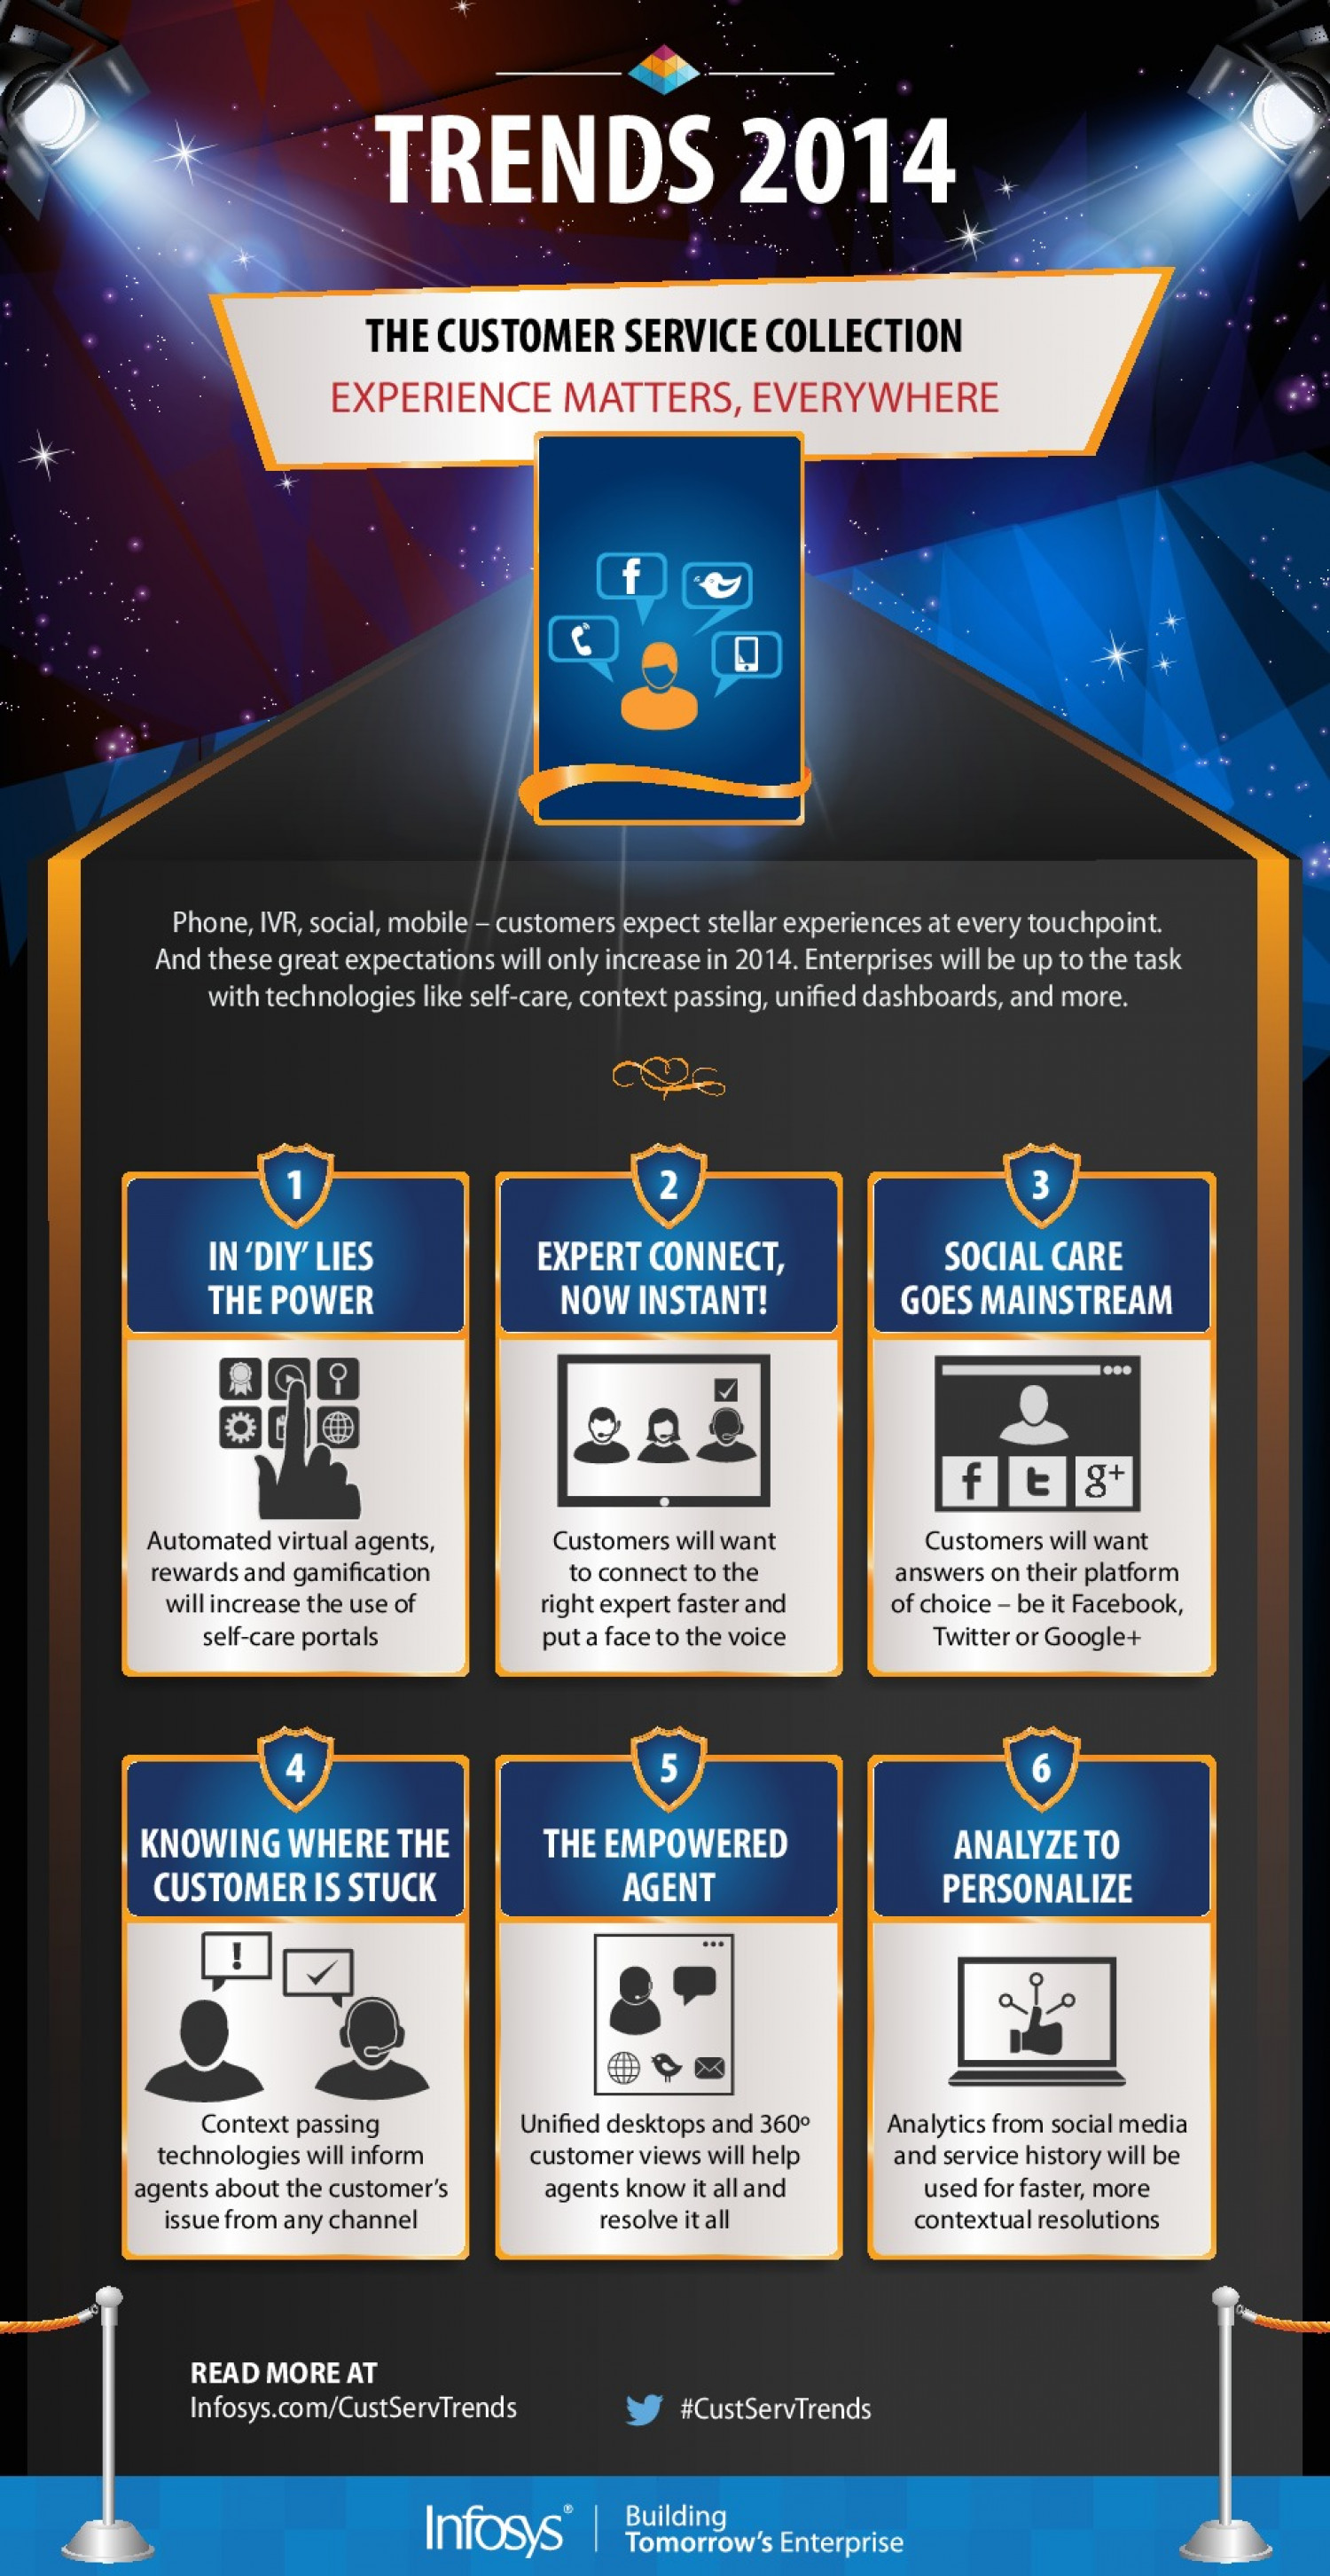 6 Customer Service Trends For 2014 Infographic